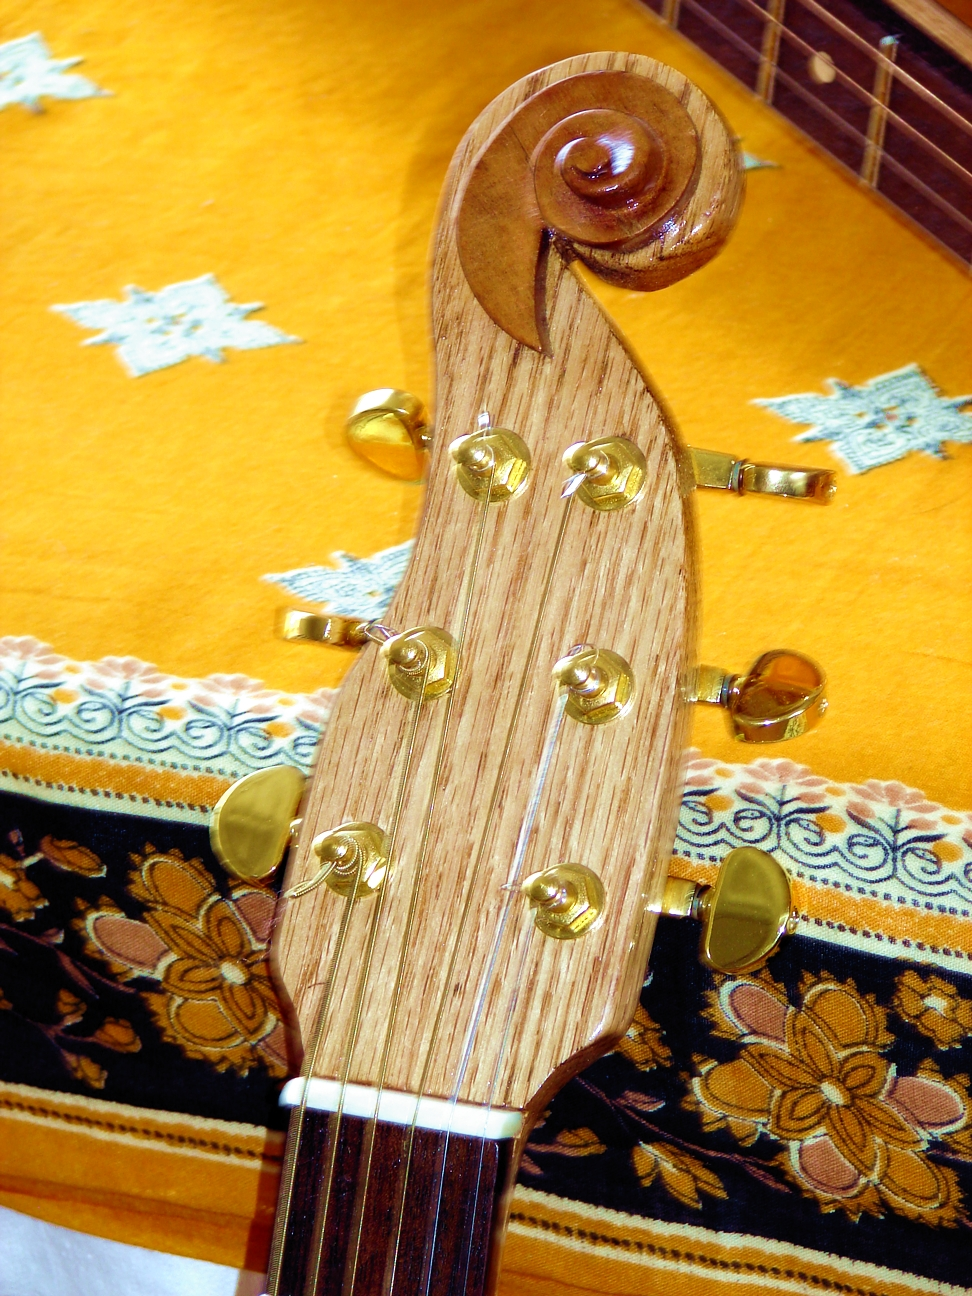 Oak neck/headstock w/ violin scroll